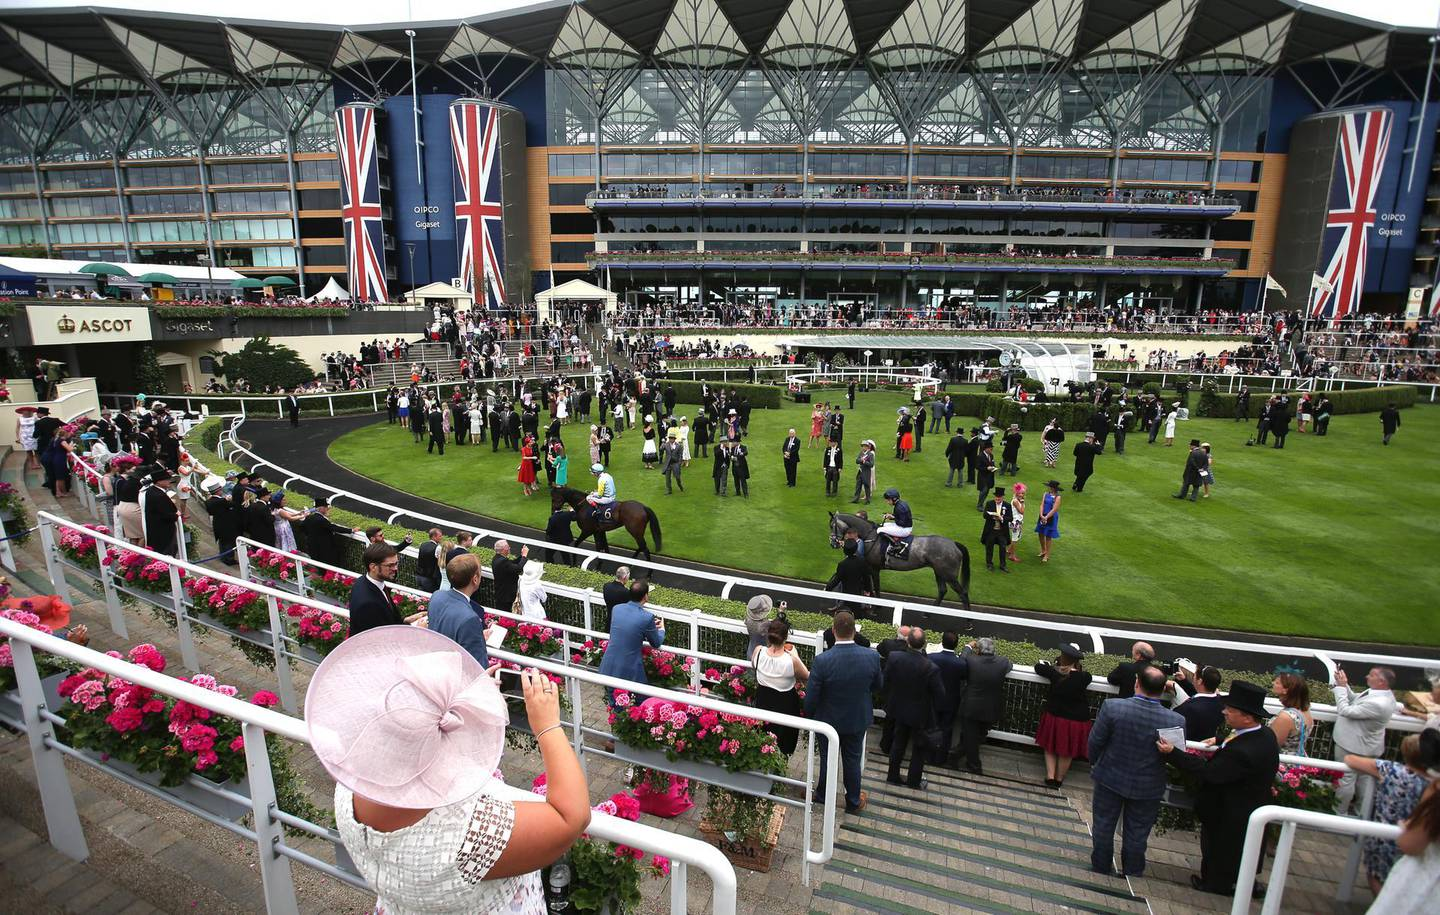 Racegoers attend the fourth day of the Royal Ascot horse racing meet, in Ascot, west of London, on June 23, 2017.  The five-day meeting is one of the highlights of the horse racing calendar. Horse racing has been held at the famous Berkshire course since 1711 and tradition is a hallmark of the meeting. Top hats and tails remain compulsory in parts of the course while a daily procession of horse-drawn carriages brings the Queen to the course.  / AFP PHOTO / Daniel LEAL-OLIVAS